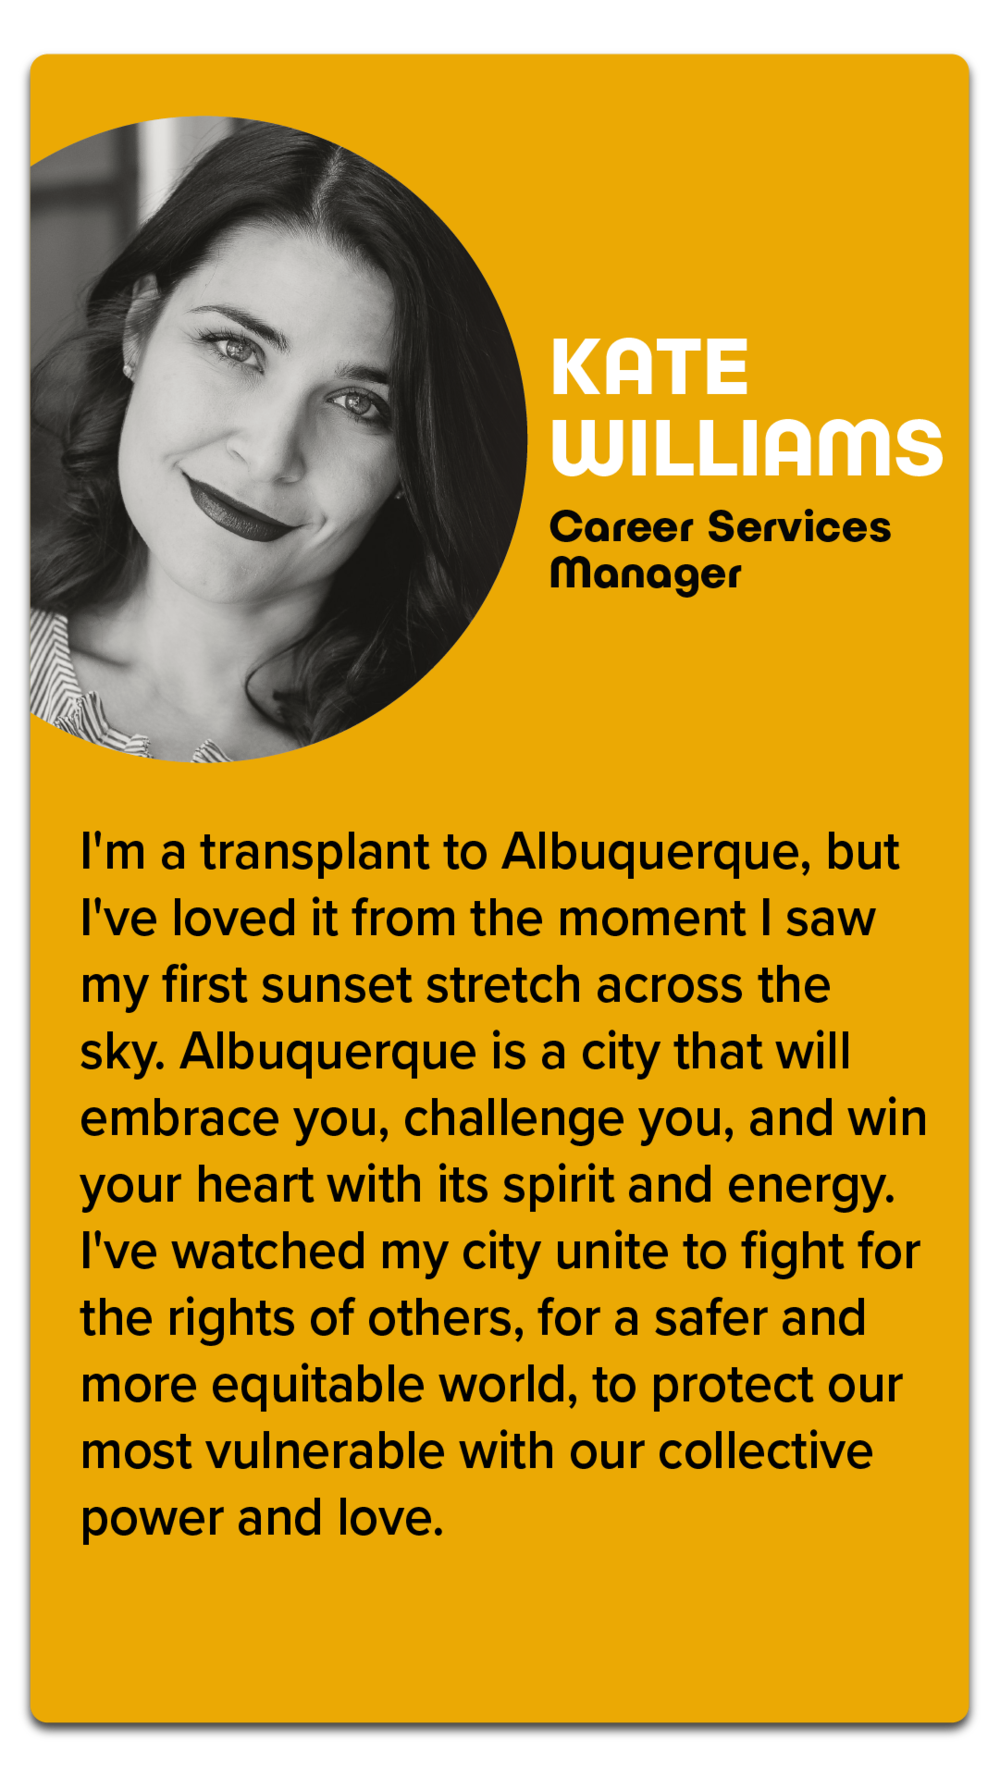 "Kate Williams, Career Services Manager  ""I'm a transplant to Albuquerque, but I've loved it from the moment I saw my first sunset stretch across the sky. Albuquerque is a city that will embrace you, challenge you, and win your heart with its spirit and energy. I've watched my city unite to fight for the rights of others, for a safer and more equitable world, to protect our most vulnerable with our collective power and love."""